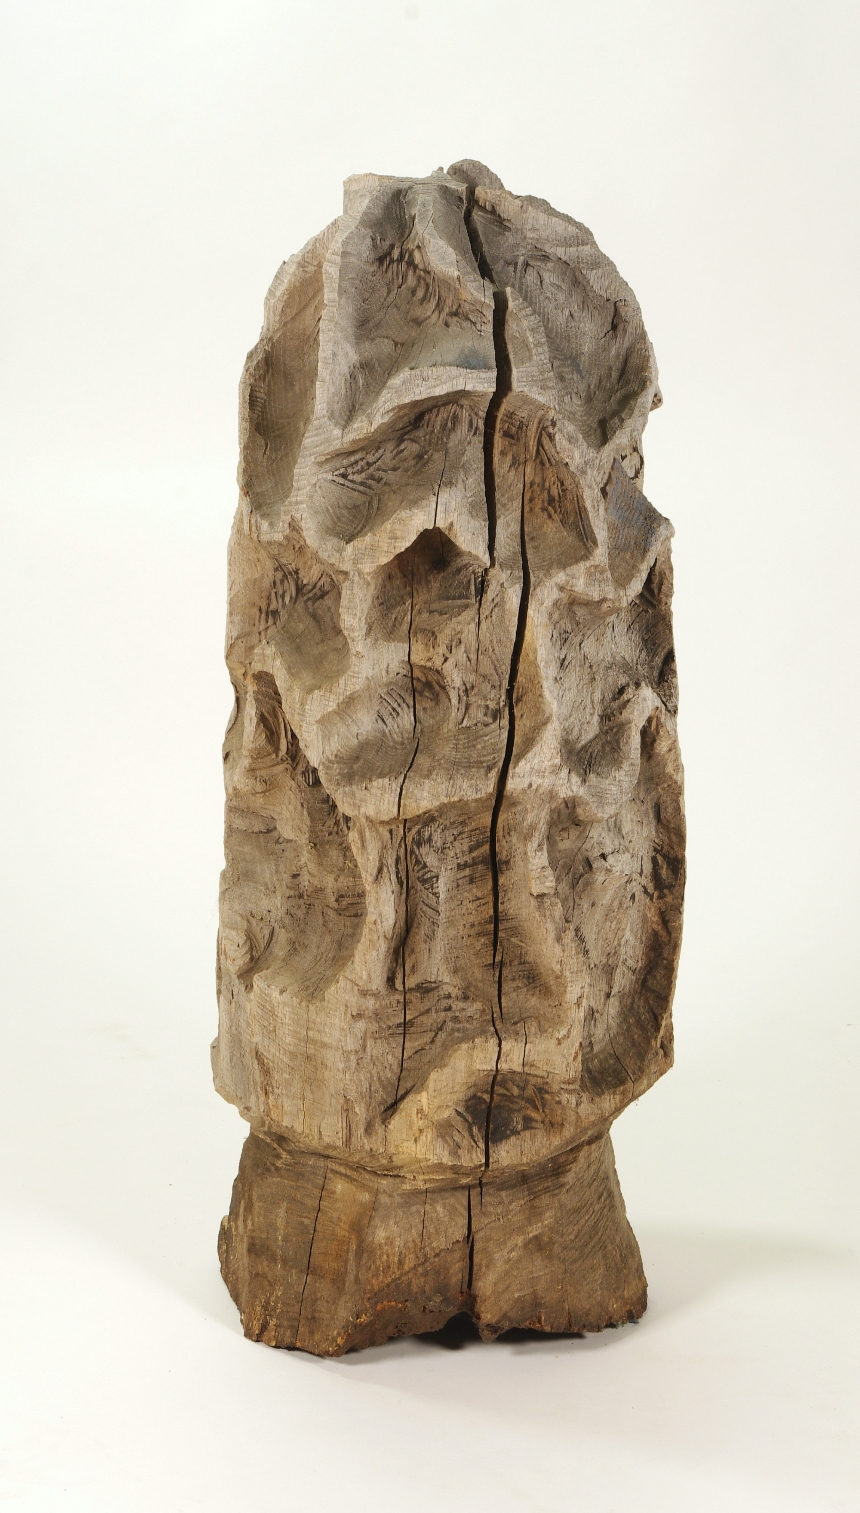 View 4: Folk Art Carved Morel Mushroom Sculpture, Mid 20th c.